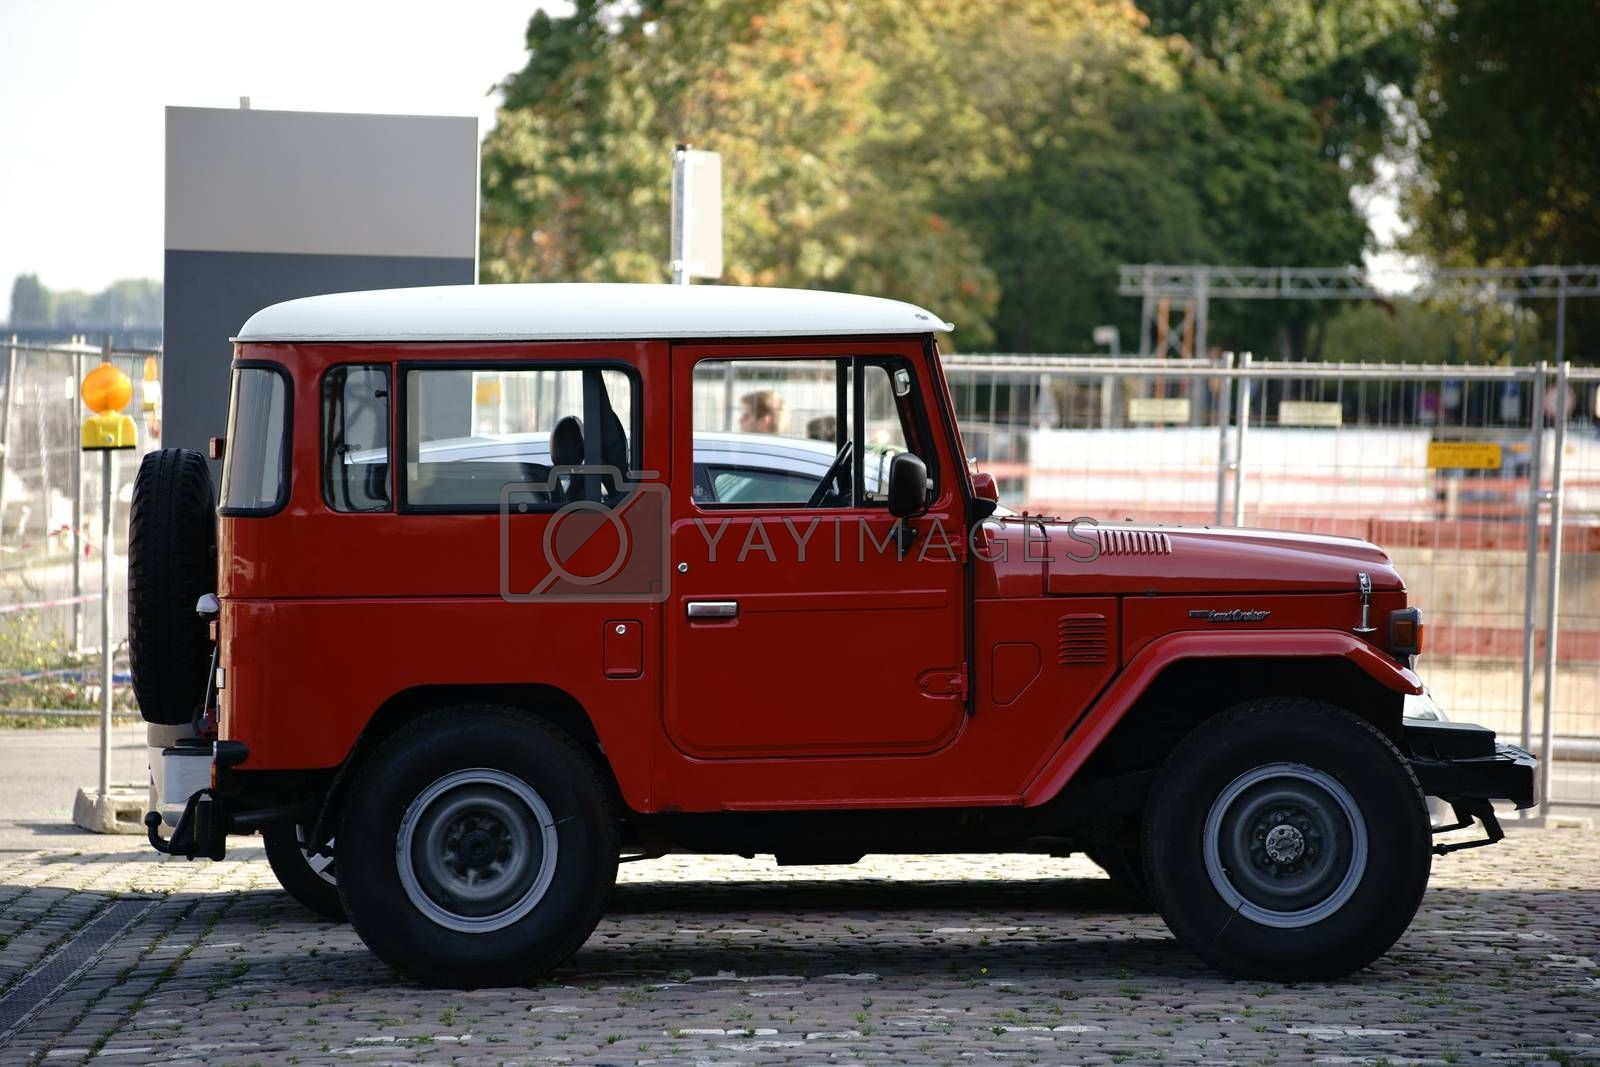 Mainz, Germany - October 2, 2015: The side view of a red SUV from the brand Toyota Land Cruiser on October 02, 2015 in Mainz.